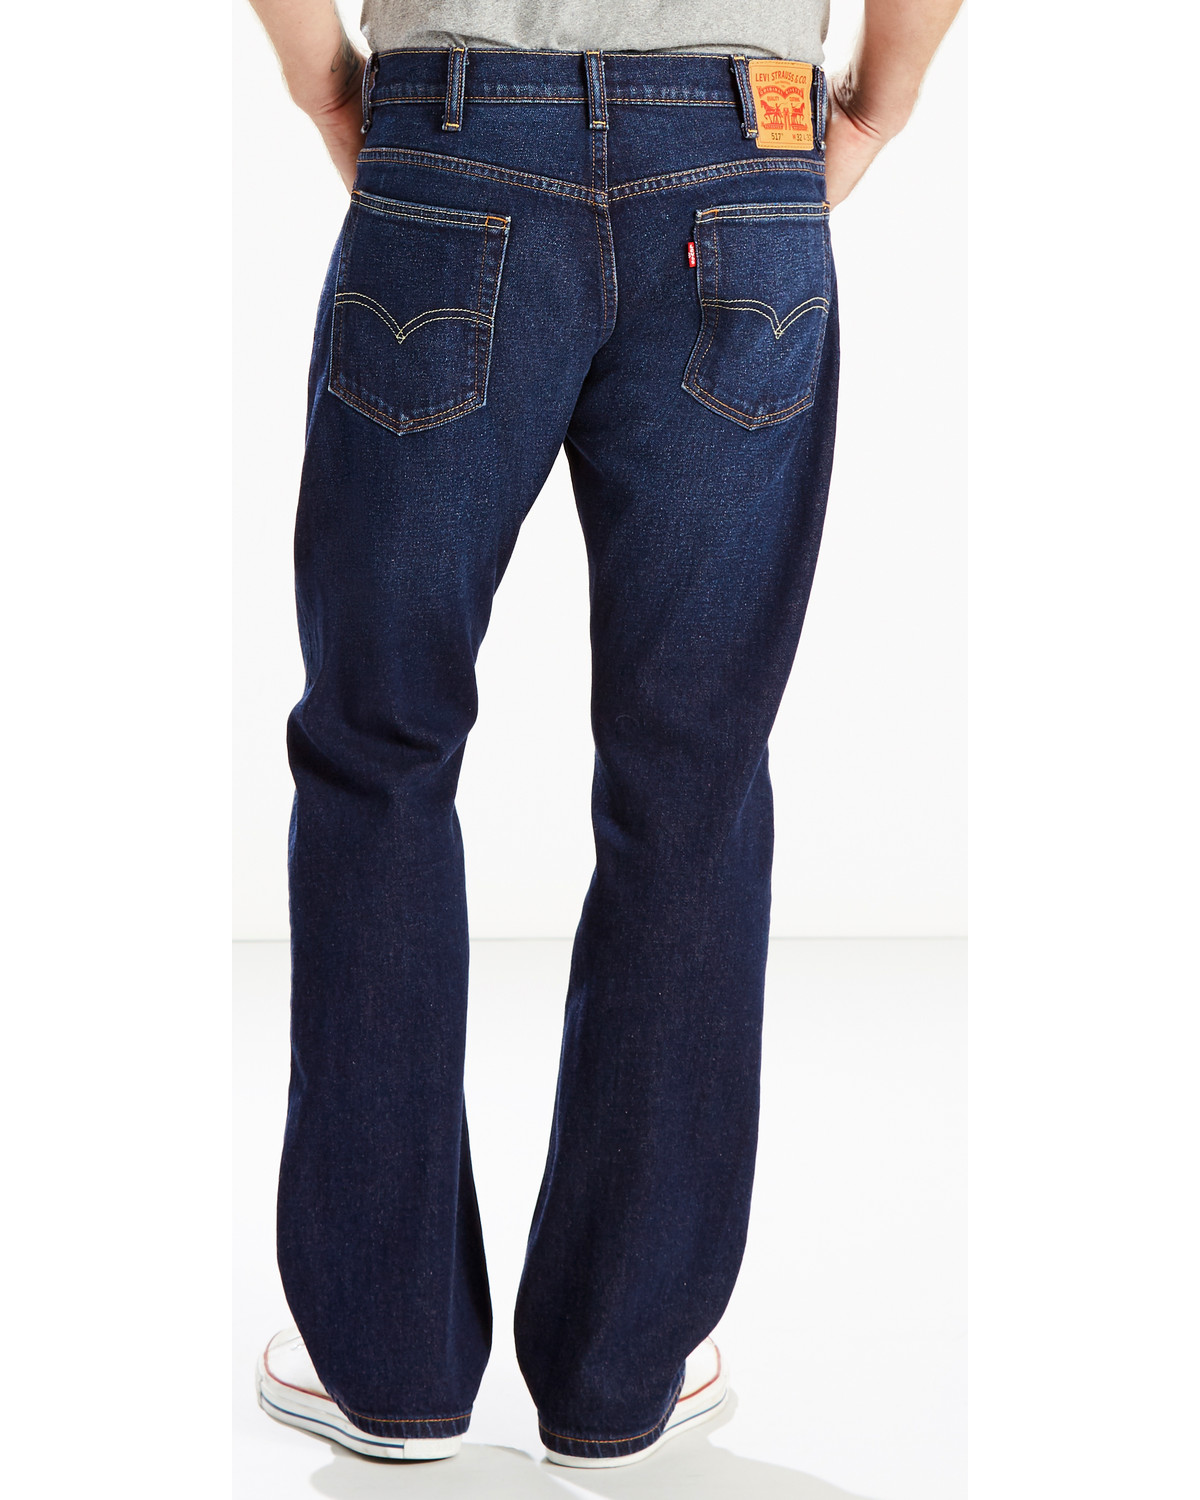 These luscious curvy boot cut jeans feature a double button closure Levi's Women's Curvy Bootcut Jeans. by Levi's. $ $ 44 99 Prime. FREE Shipping on eligible orders. Some sizes/colors are Prime eligible. out of 5 stars Product Description your every curve.